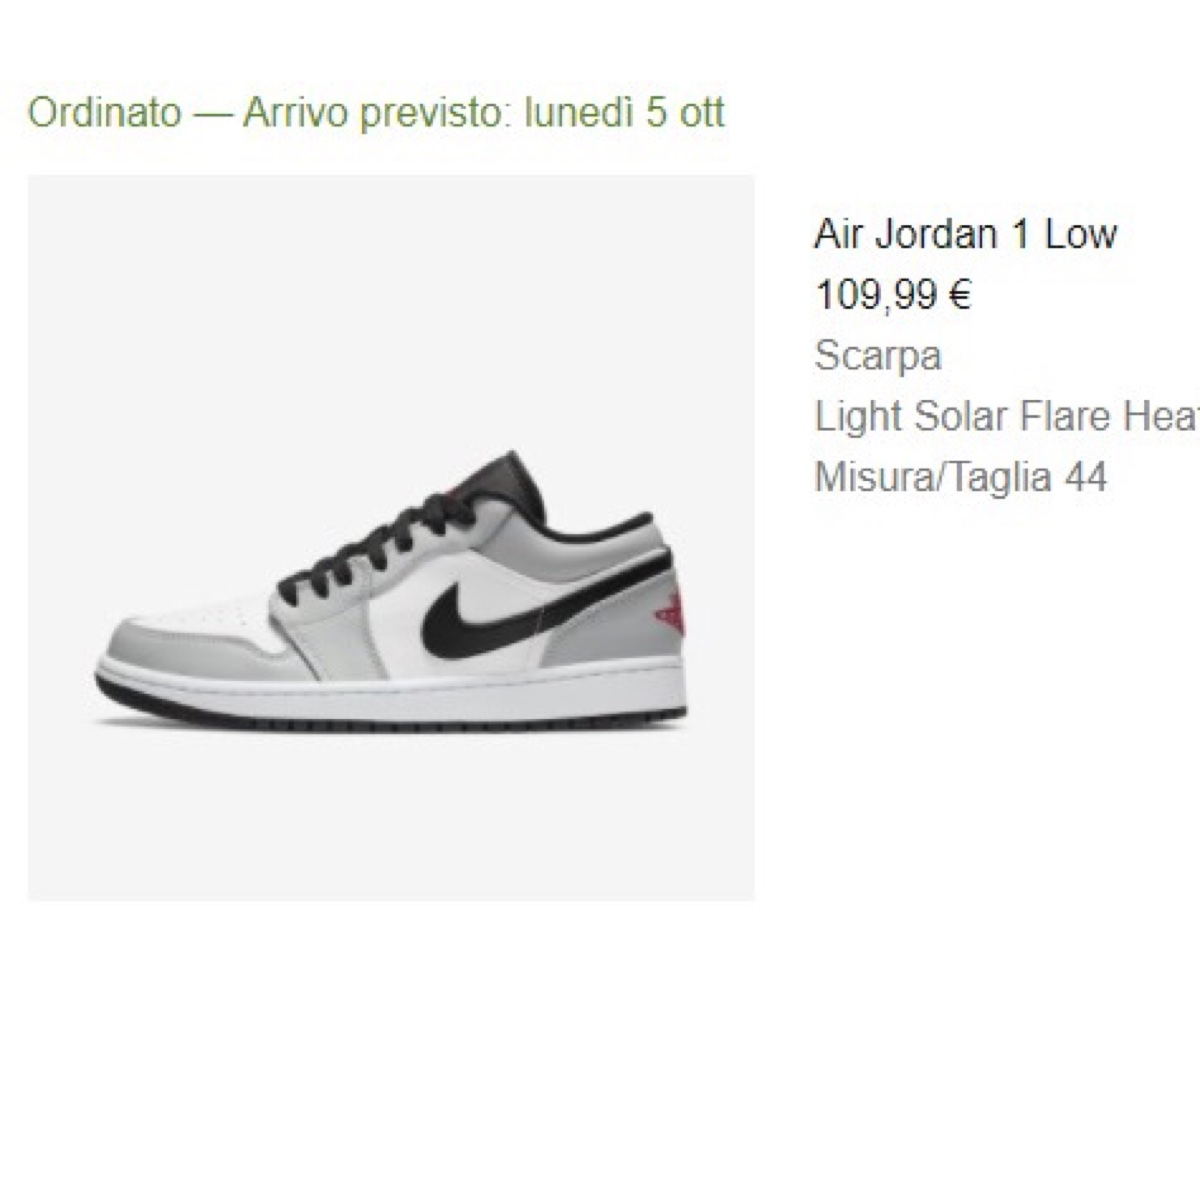 Air Jordan 1 low light solar flare heathern